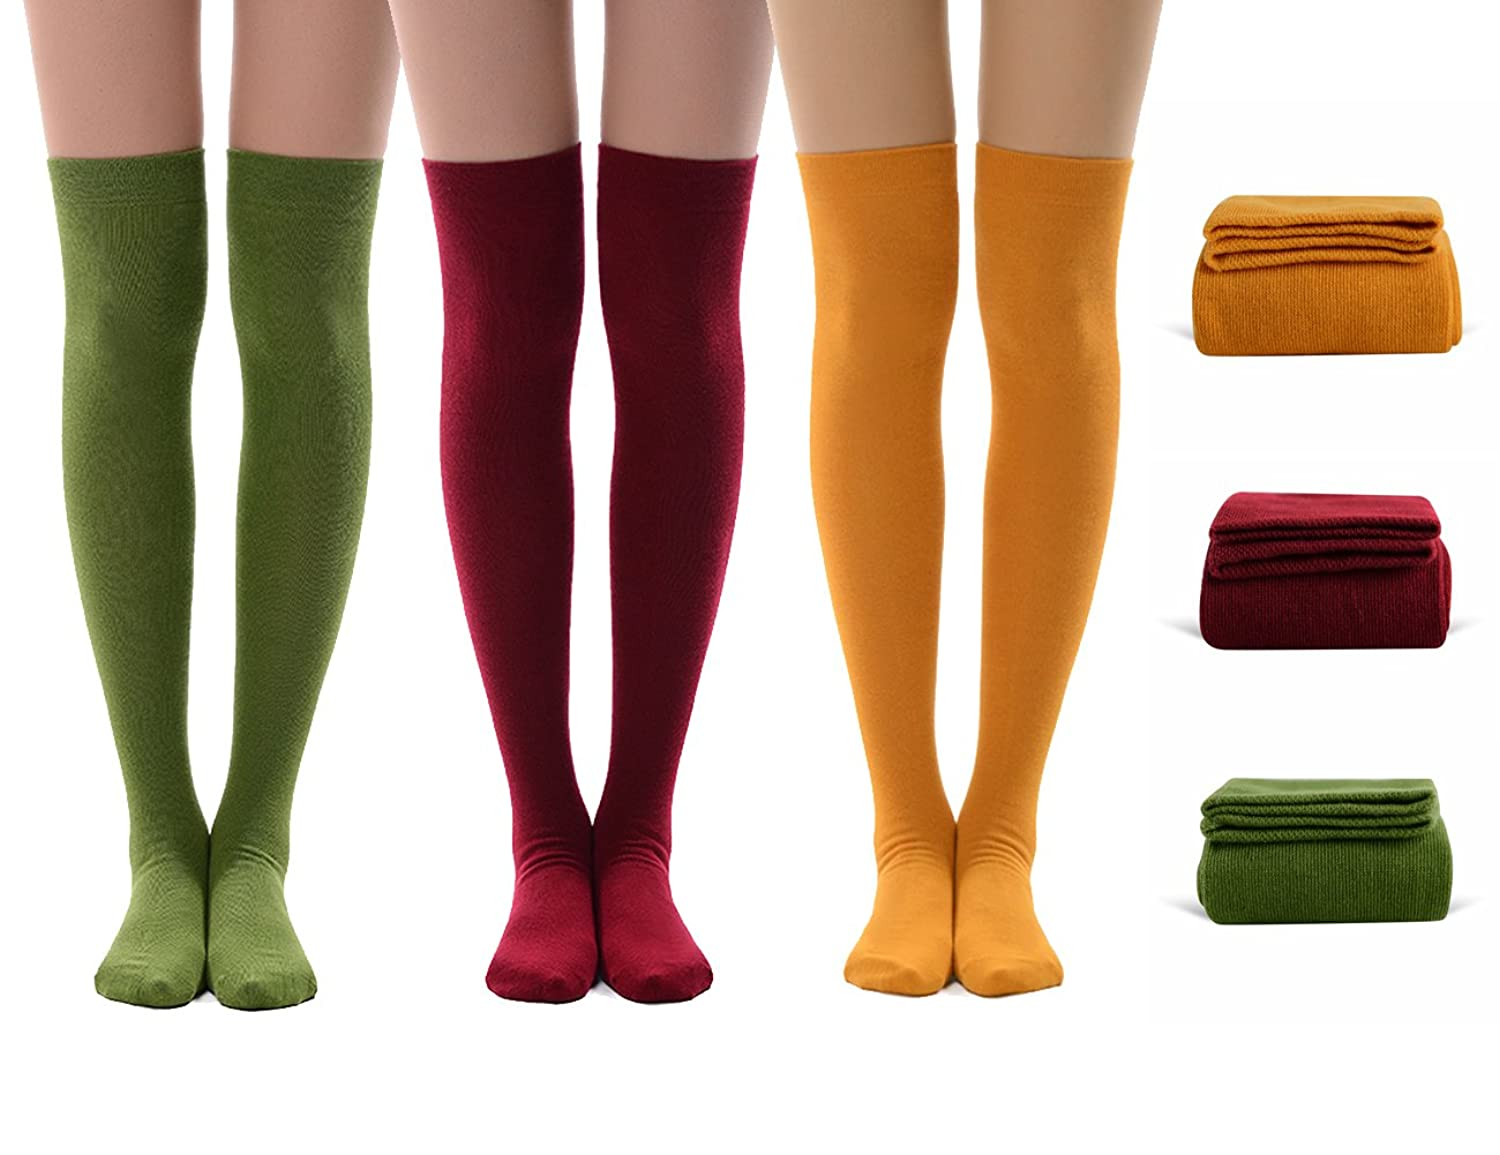 c6989bfddf0 Stretchy cotton-spandex blend is durable and comfortable for all-day wear.  SIZE   COLOR  MEIKAN Knee High Trouser Socks with good elasticity come in  one ...